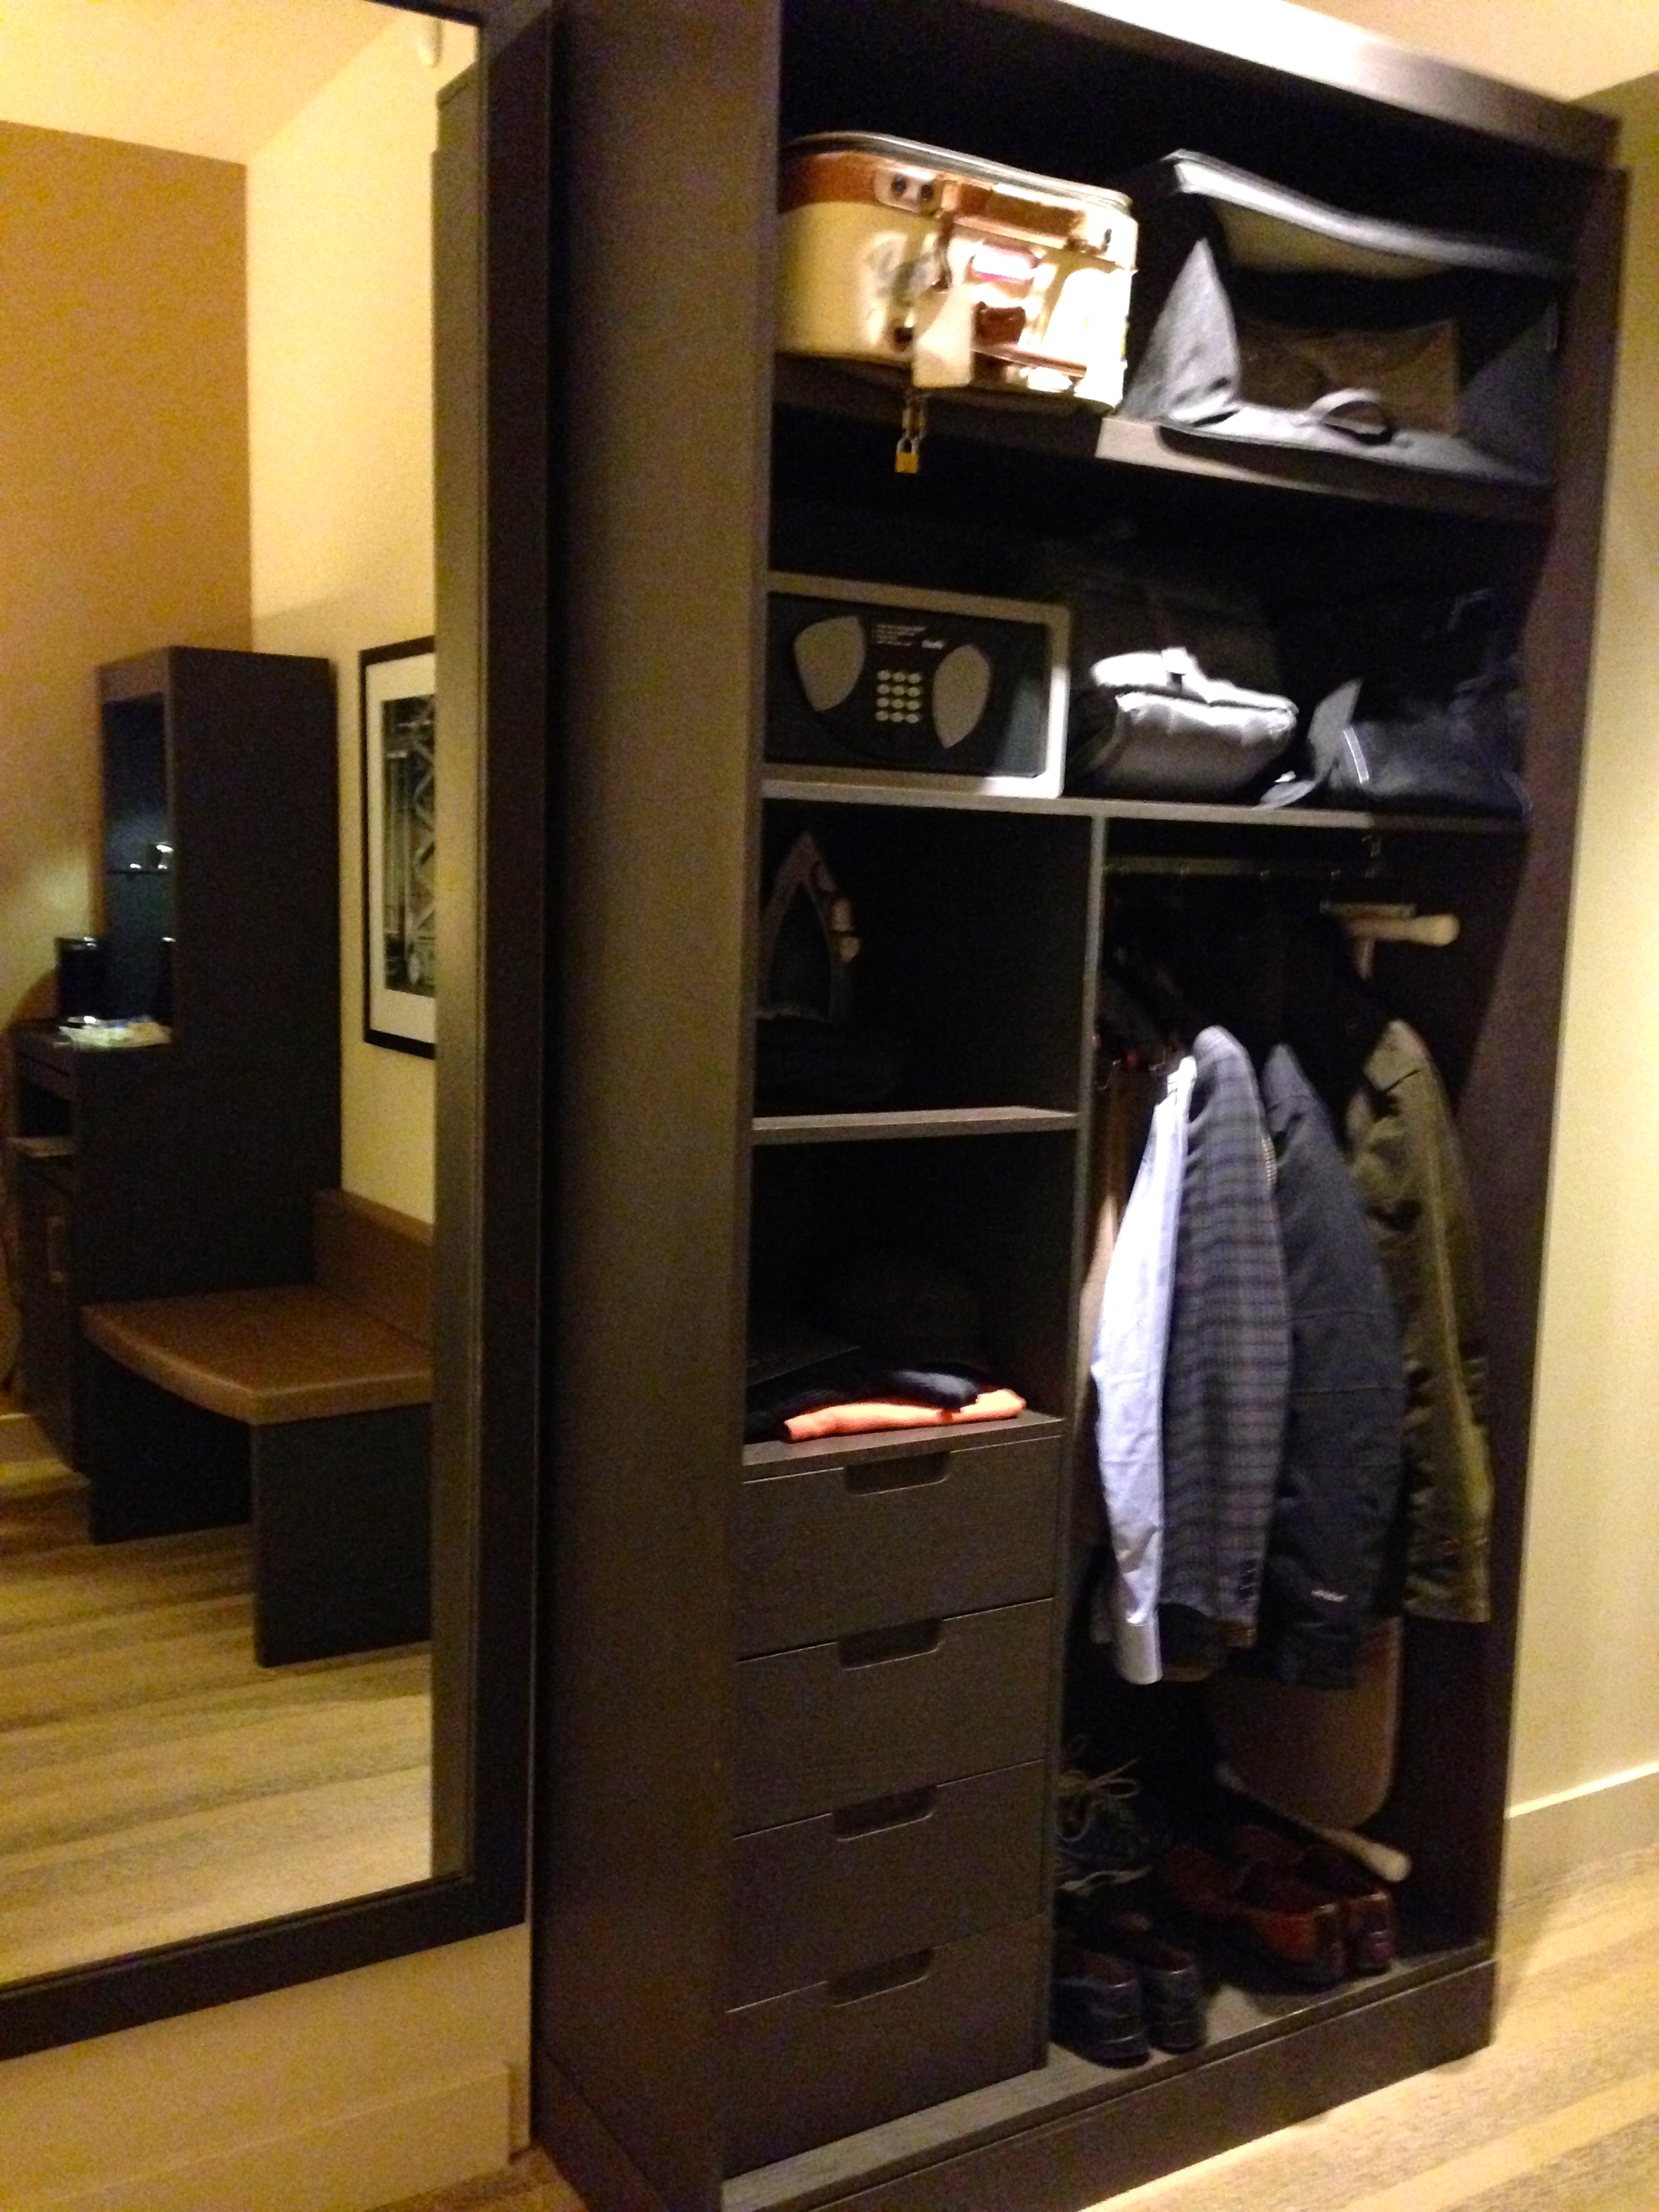 Hyatt at Olive 8 Open Closet & Storage